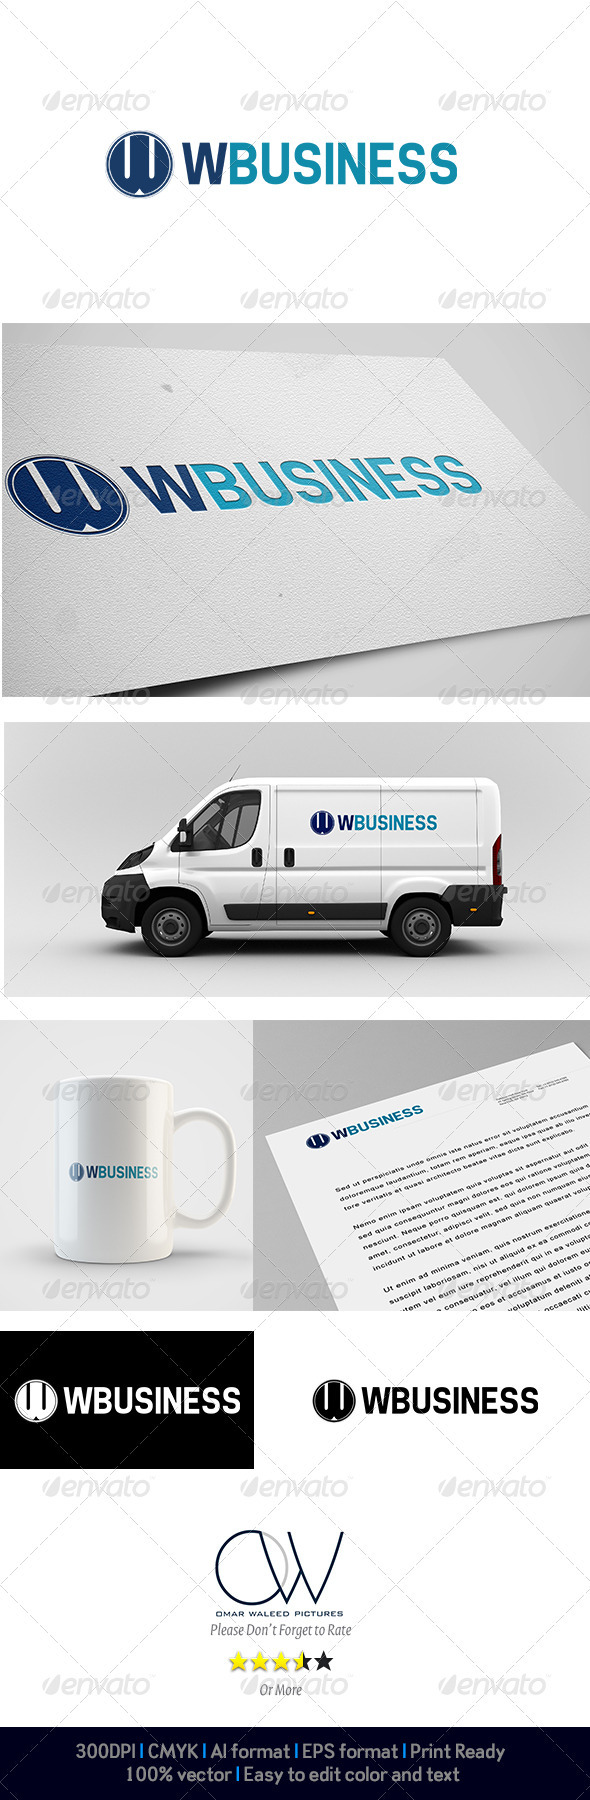 W business Logo - Letters Logo Templates